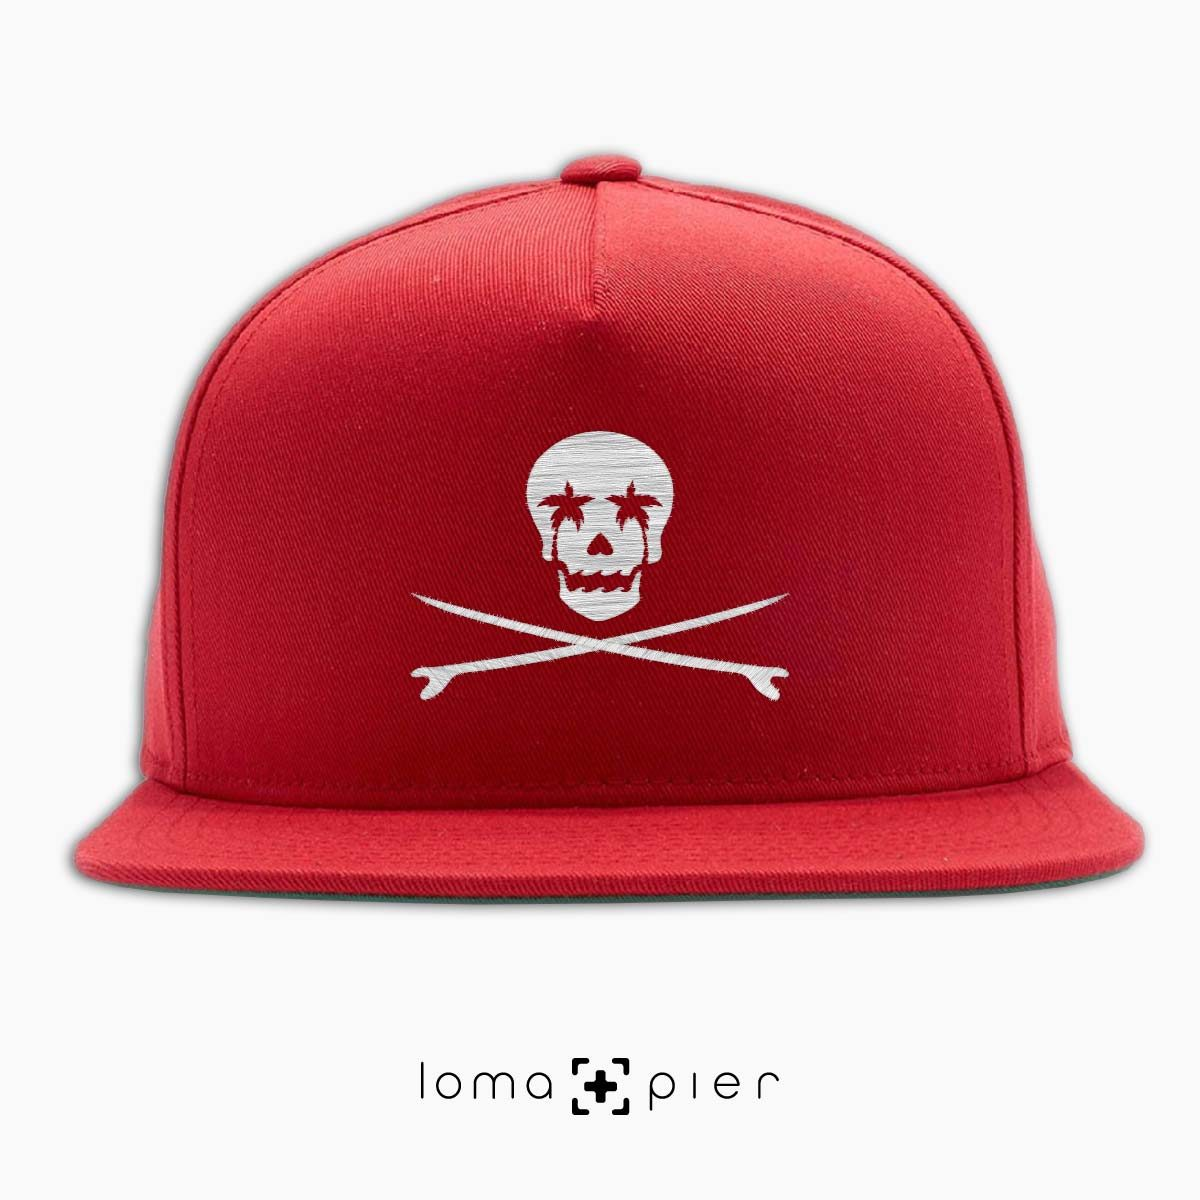 SKULL SURFBOARDS redondo beach snapback hat in red by loma+pier hat store